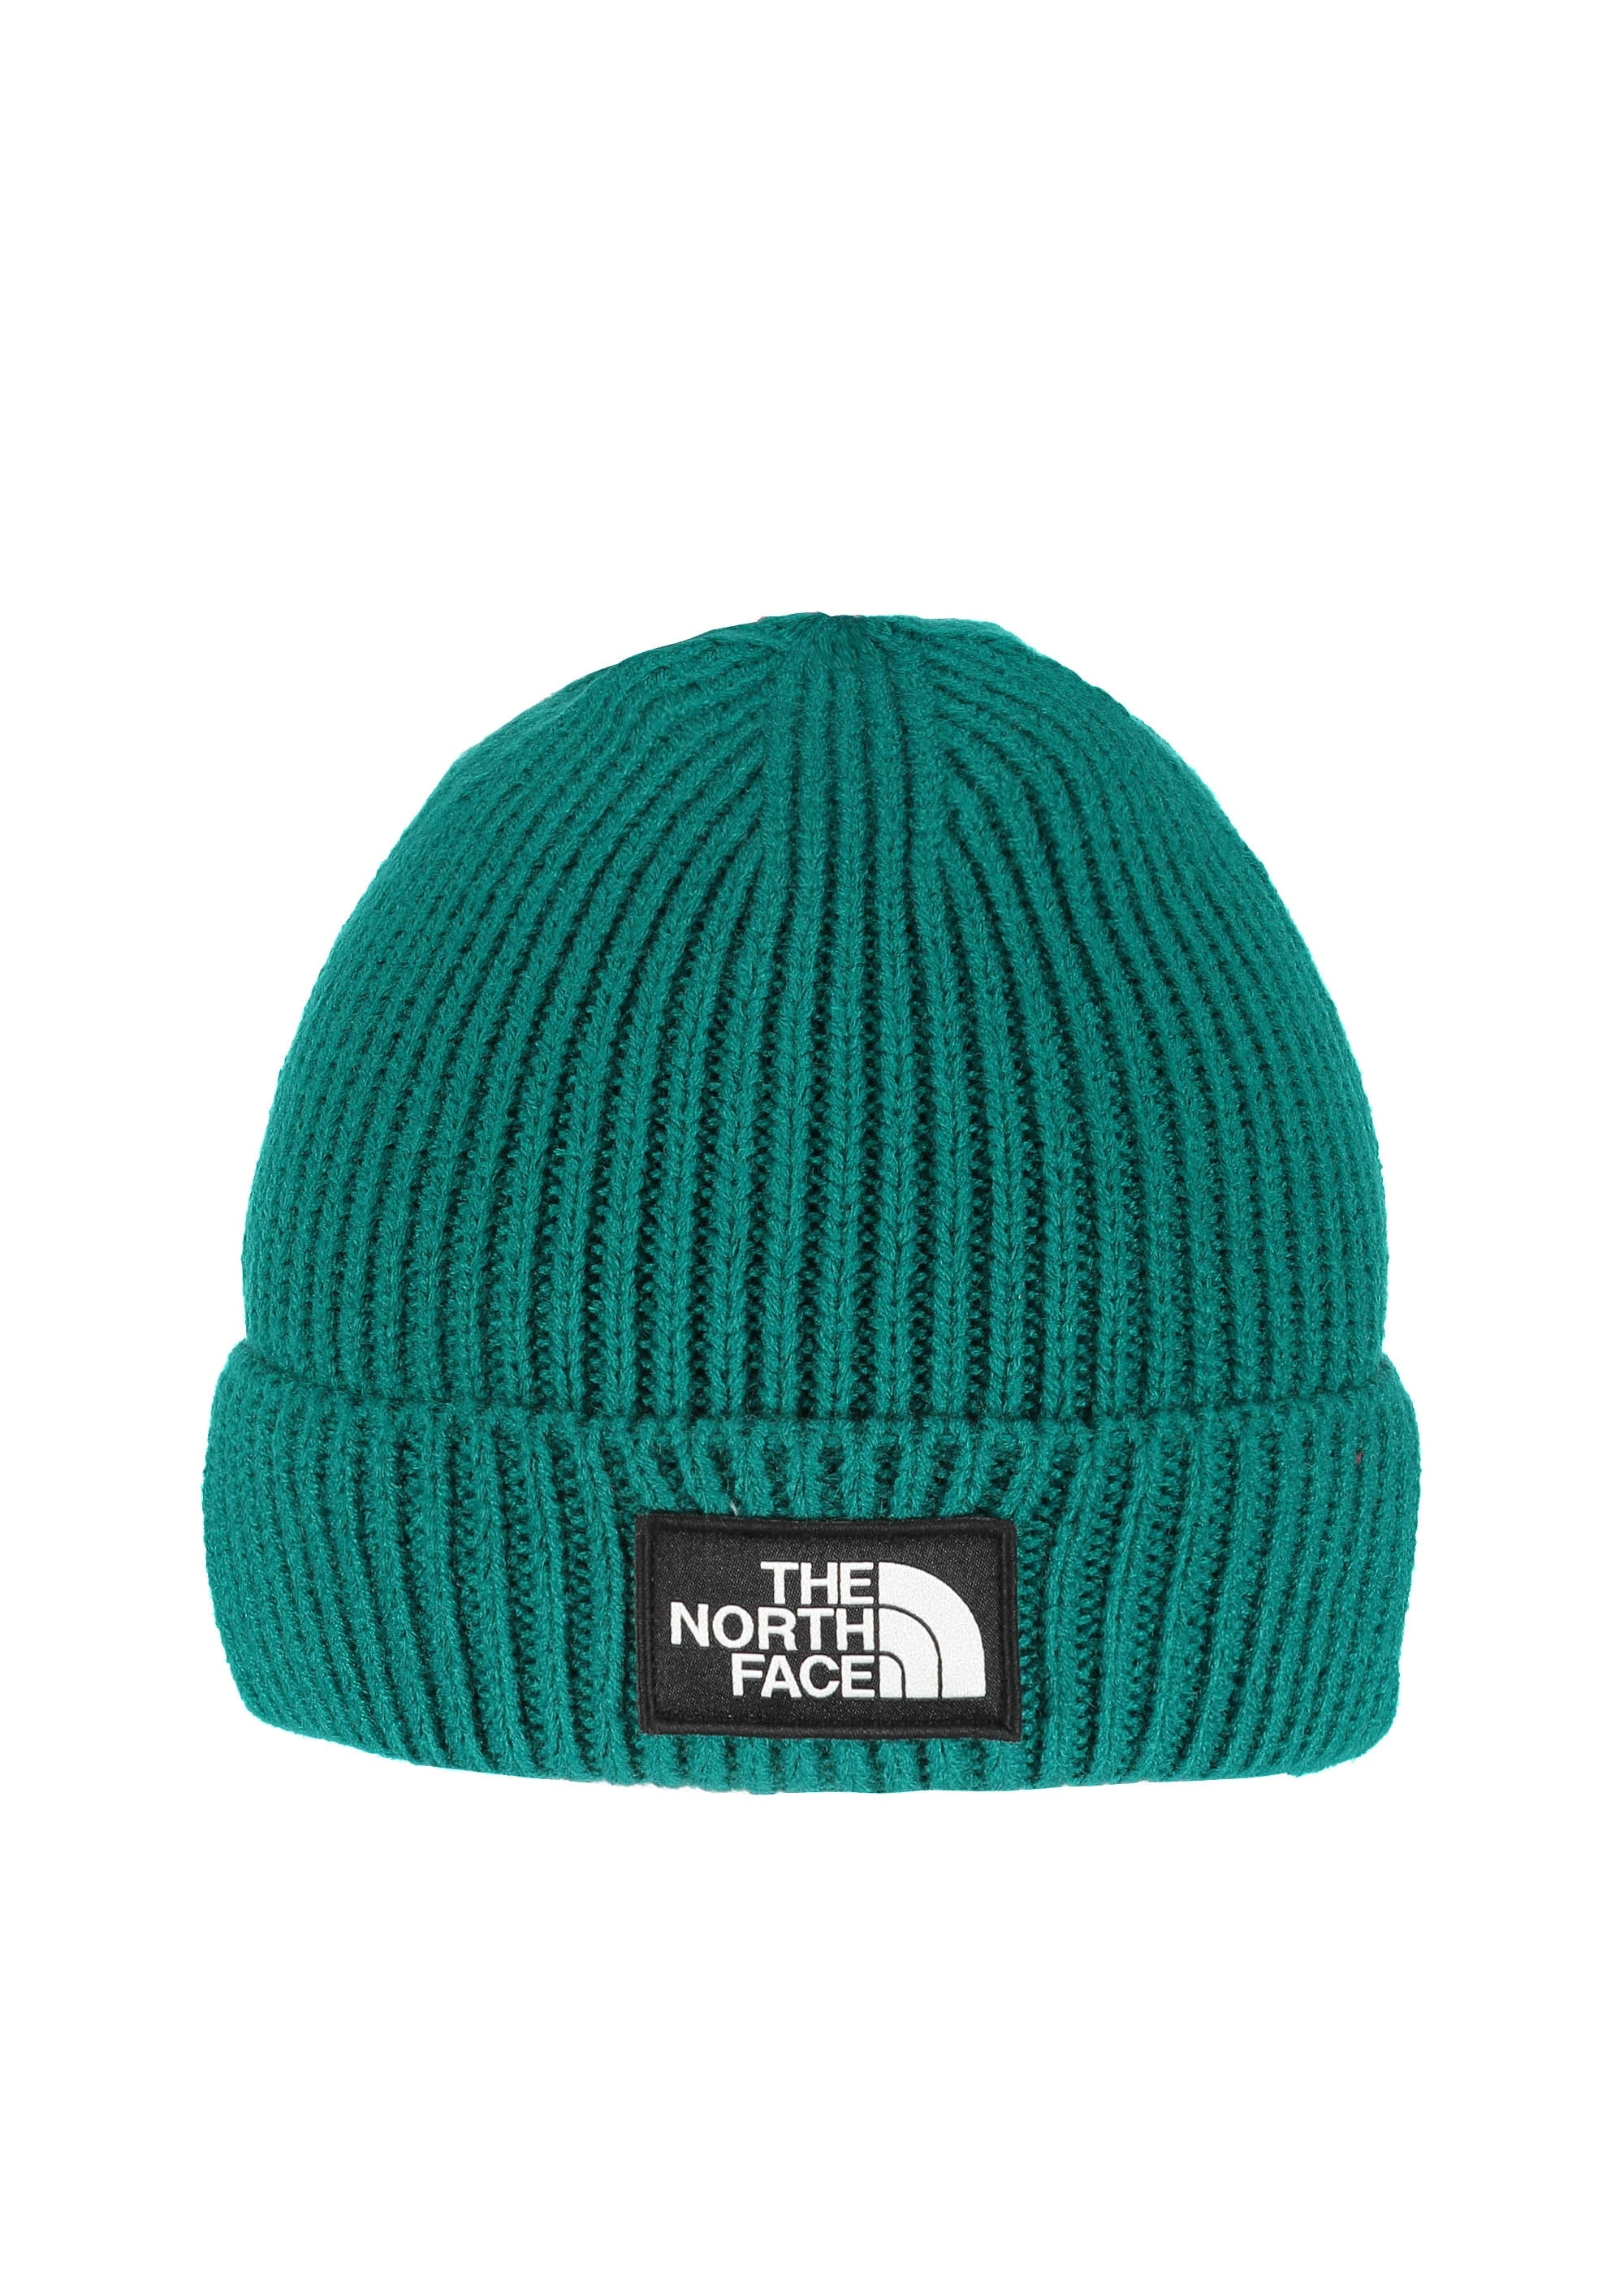 8eacdd8a The North Face Logo Box Cuff - Everglade - Headwear from Triads UK